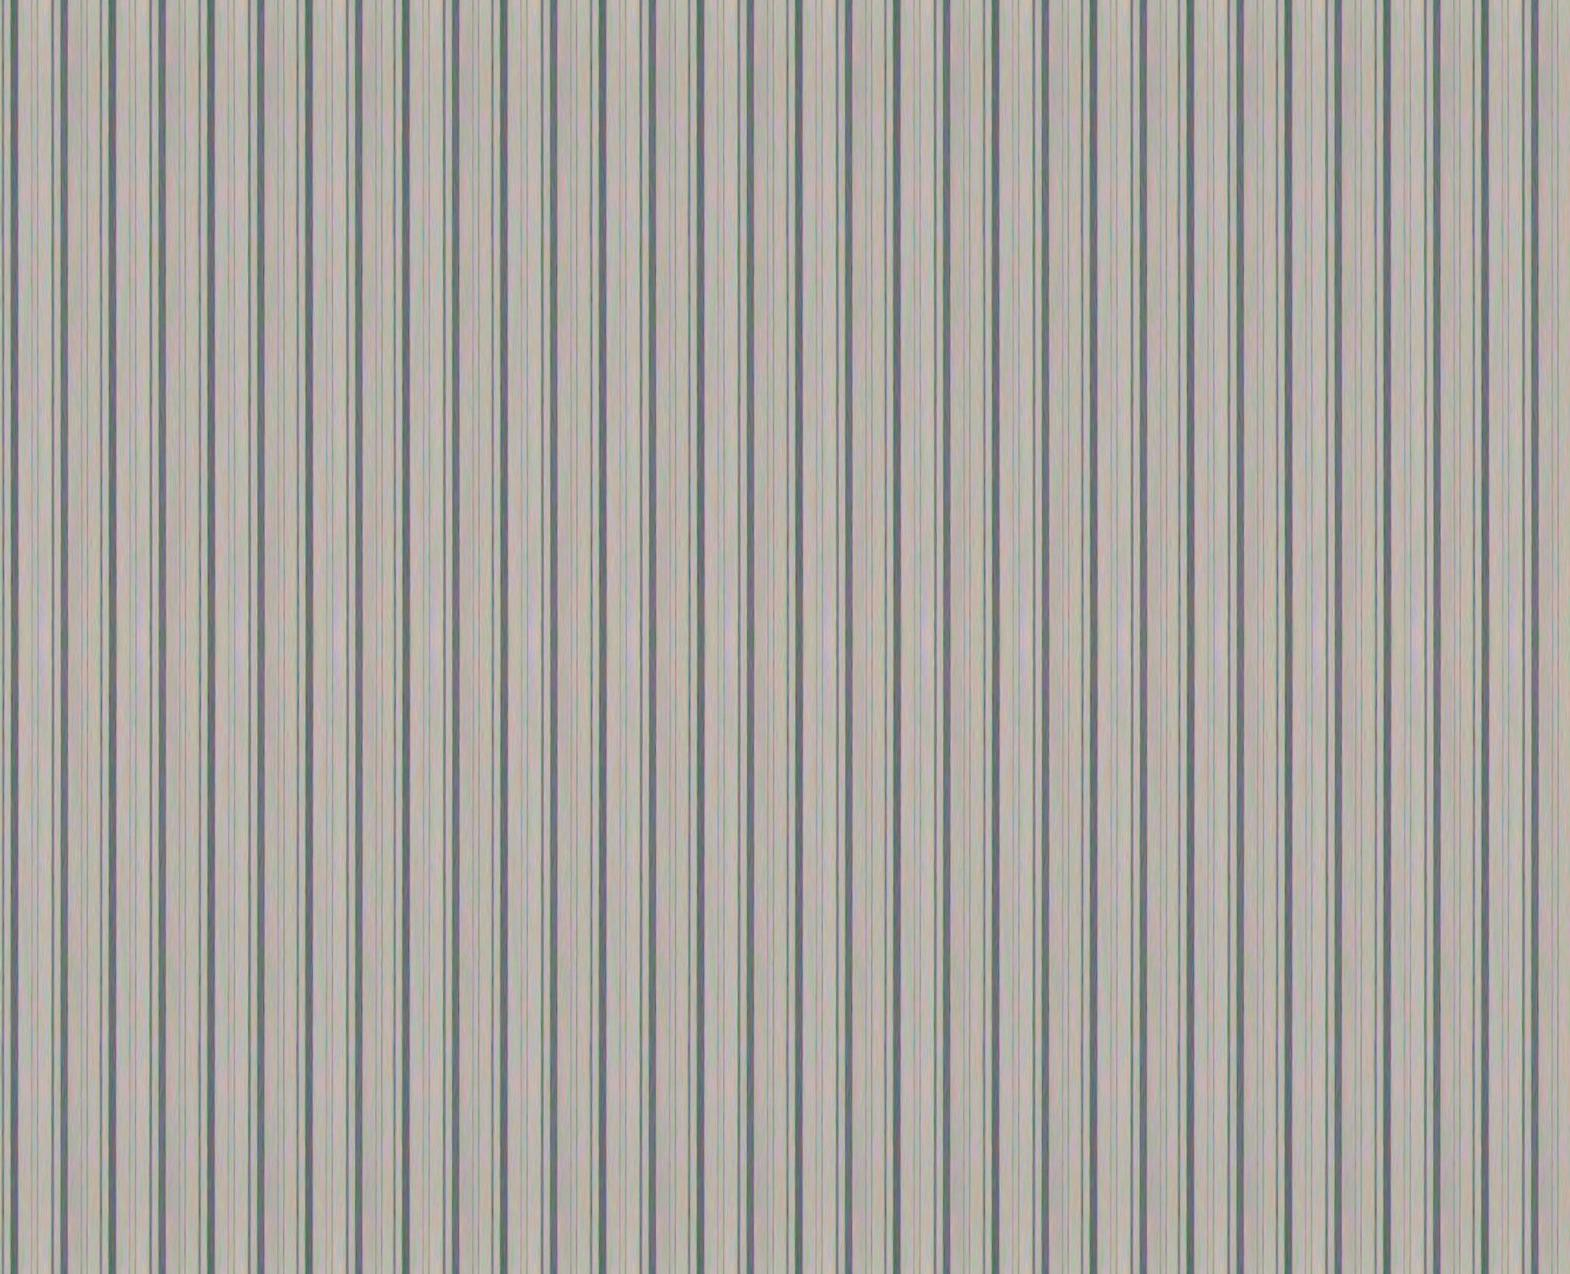 Metal Siding Sheets : Swtexture free architectural textures corrugated sheet